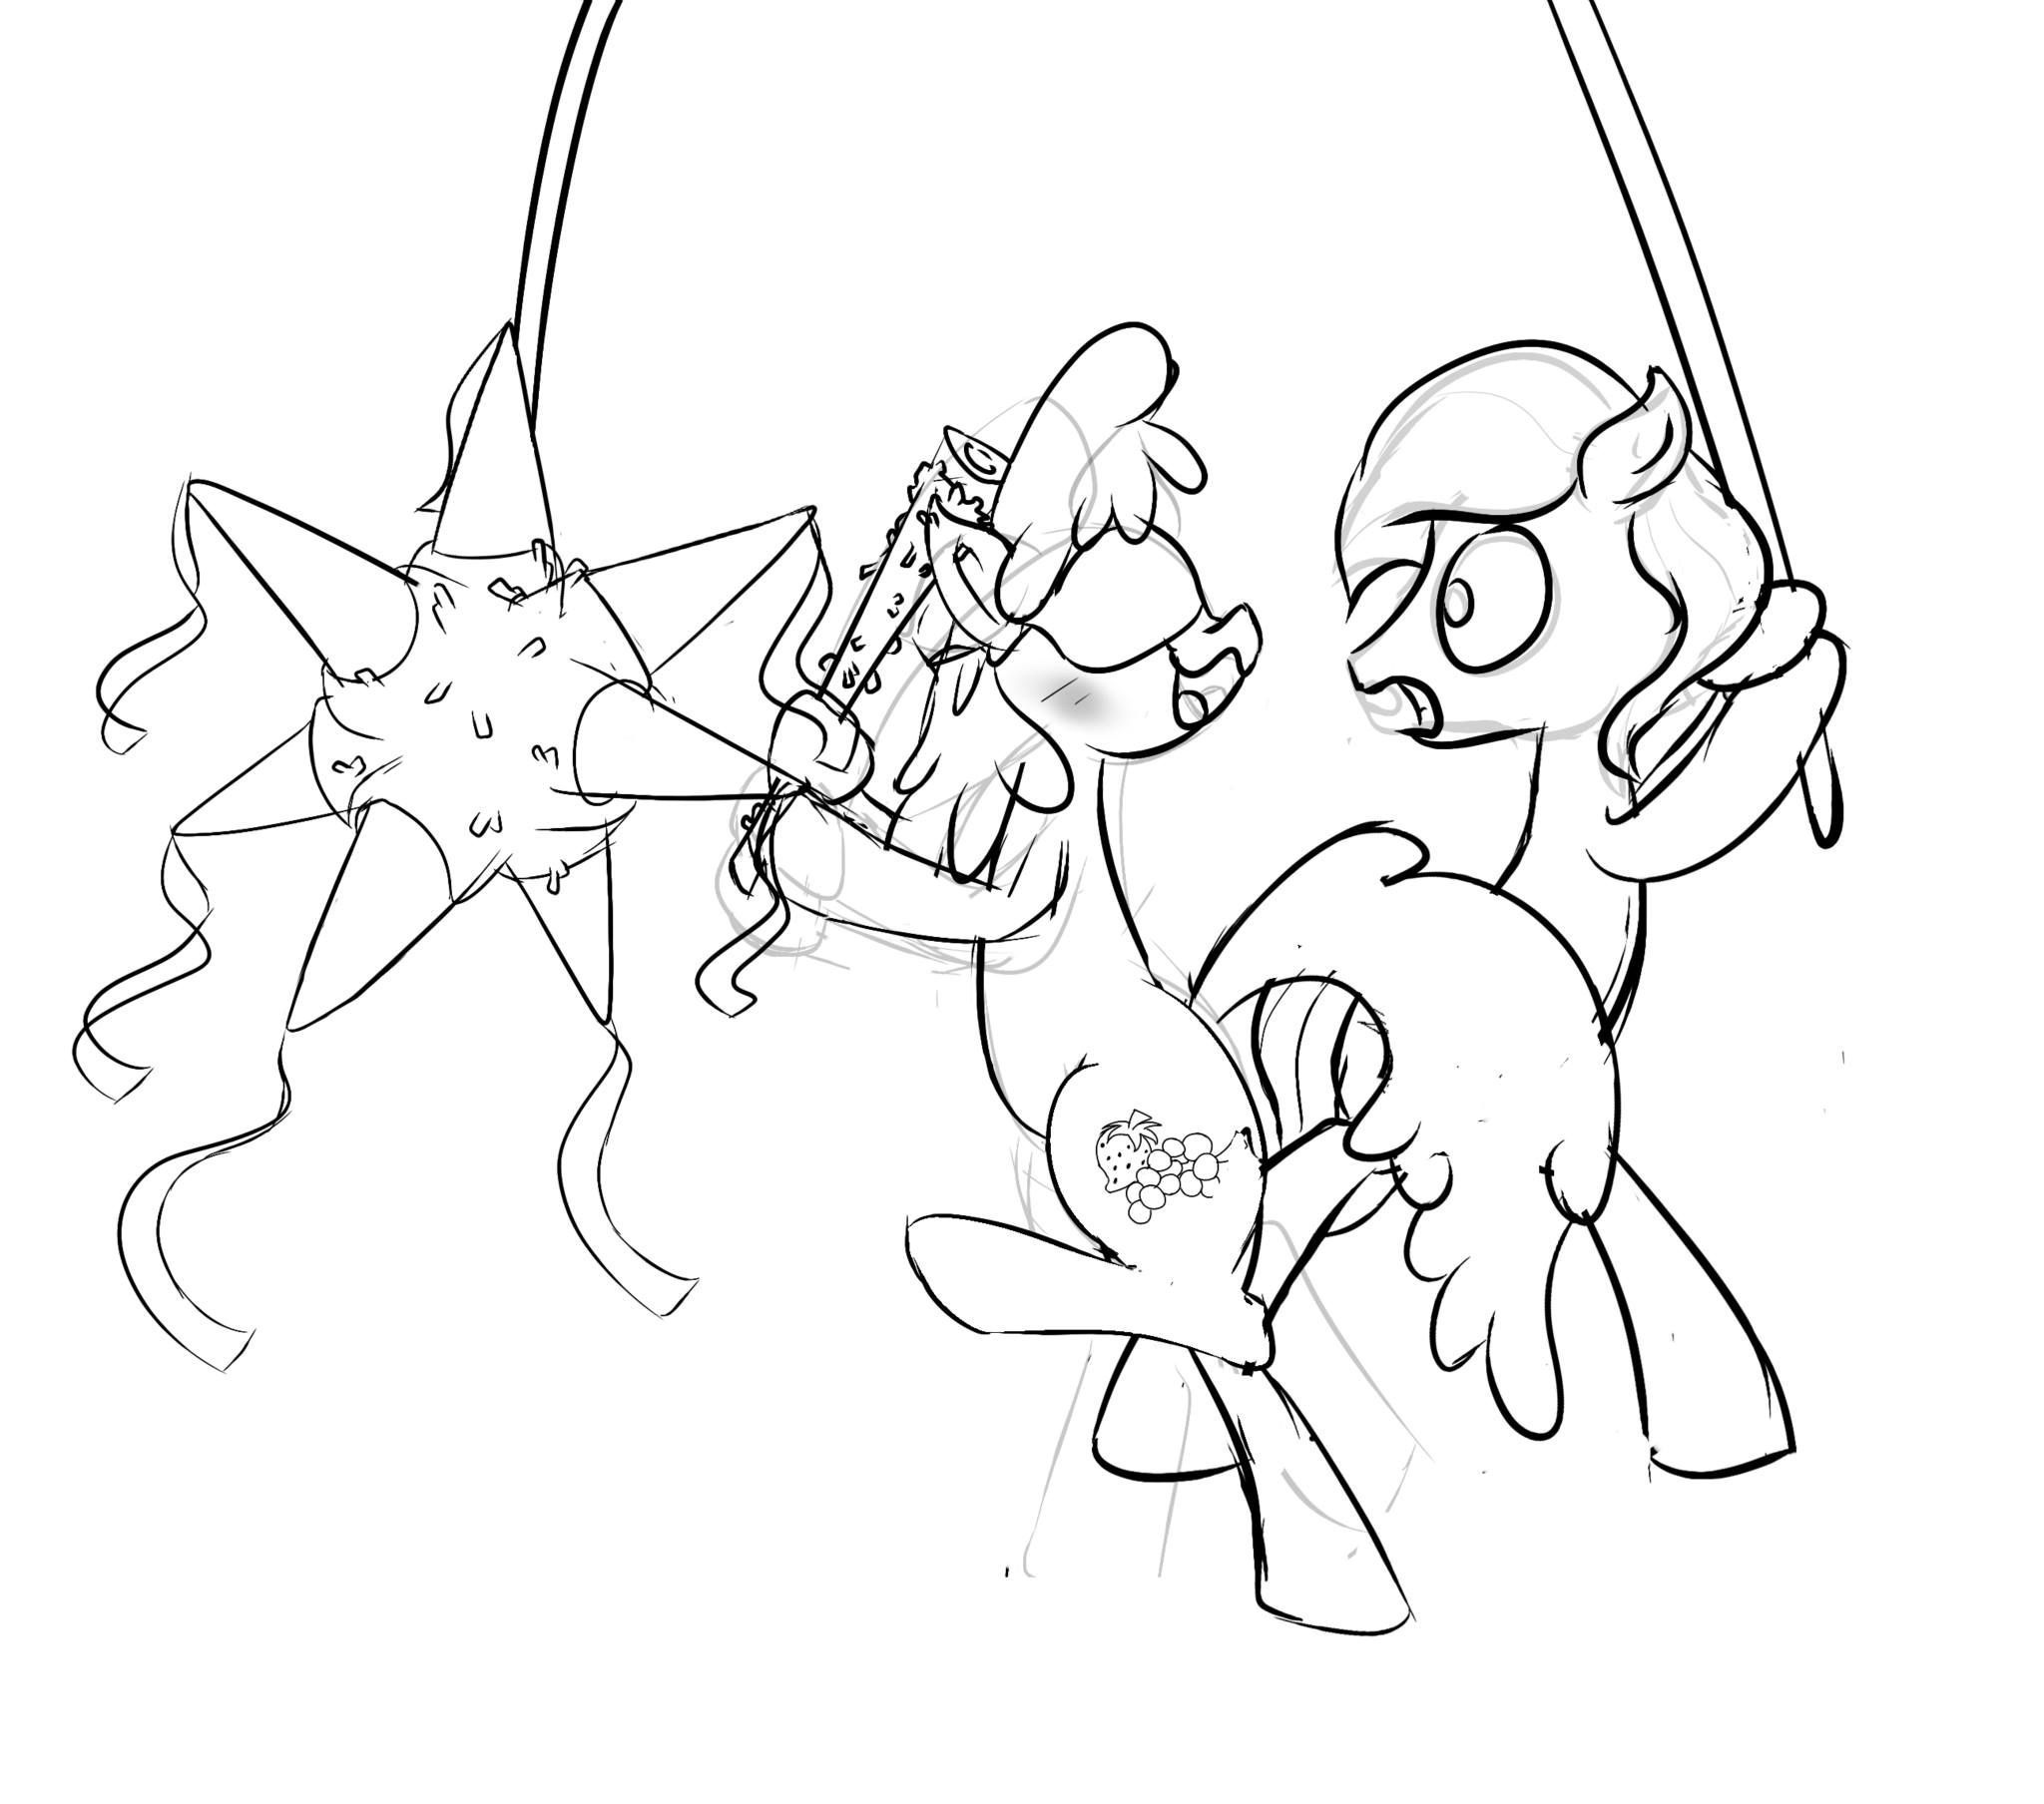 2048x1808 An Sketch Of Berry Punch About To Hit A Crystal Pony. Here Is